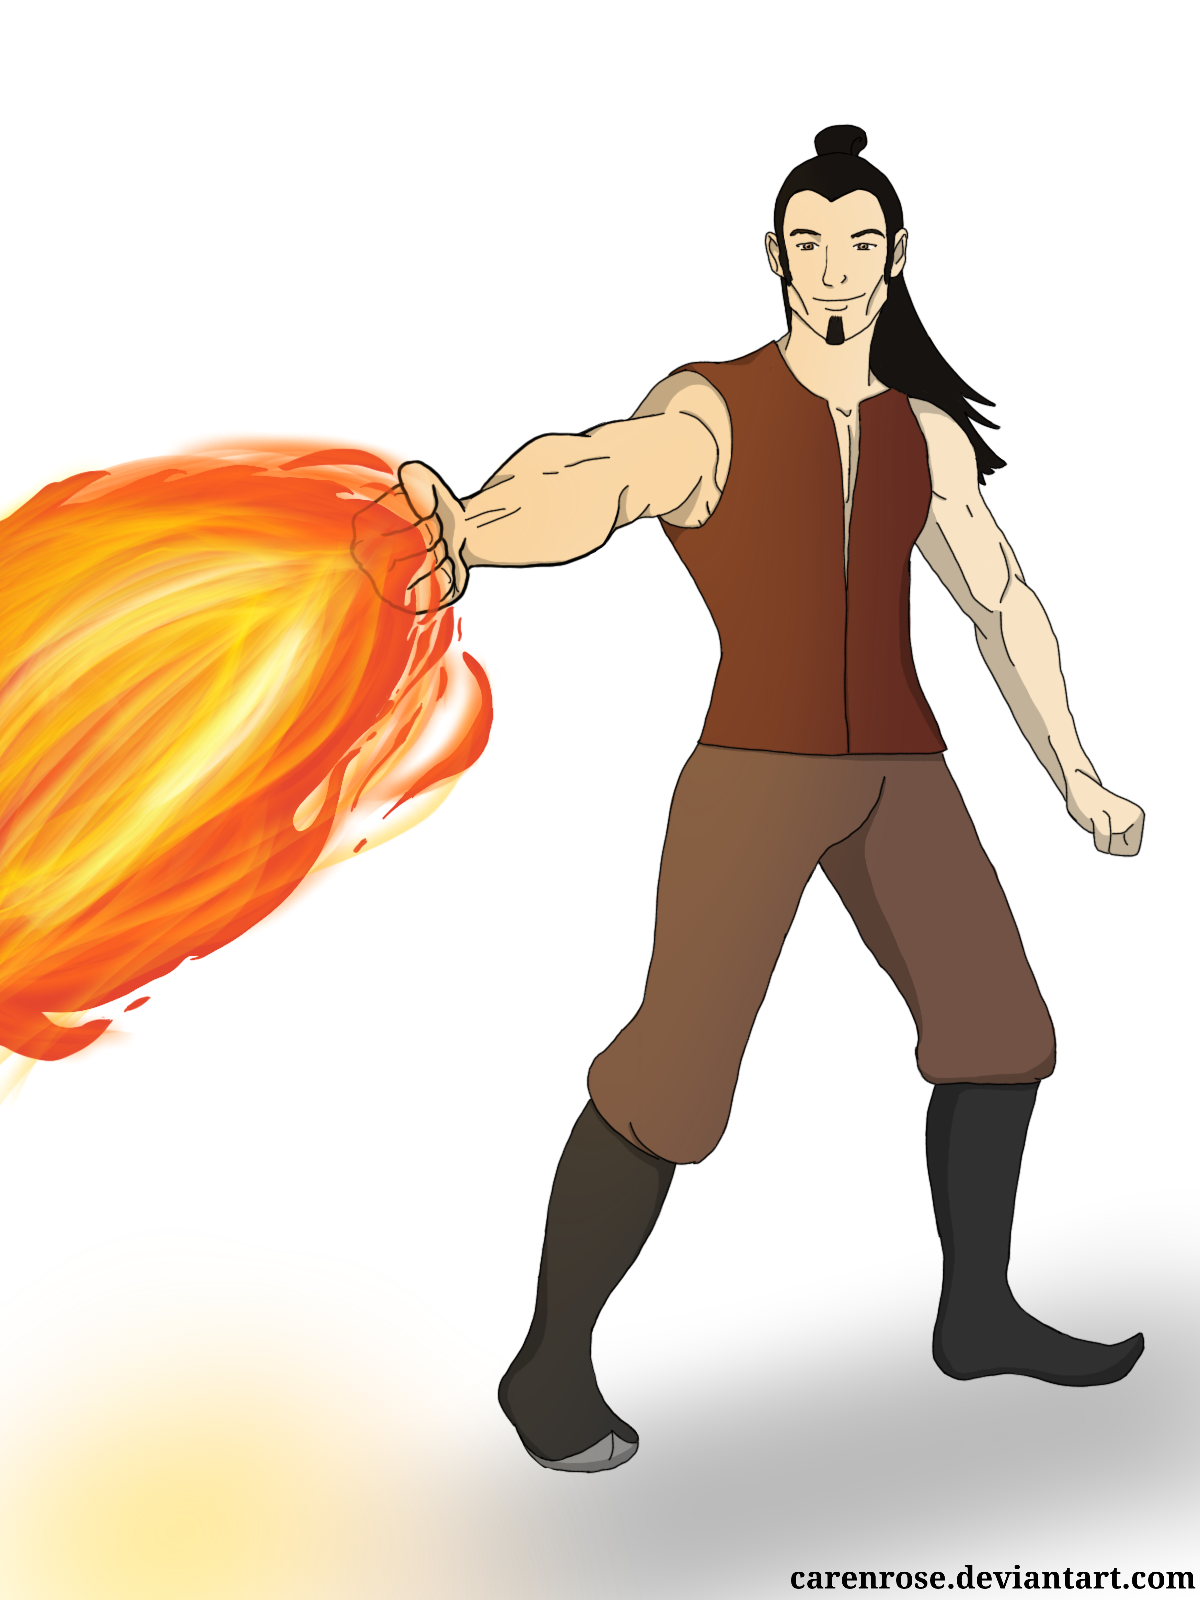 Chiang - Another Firebender